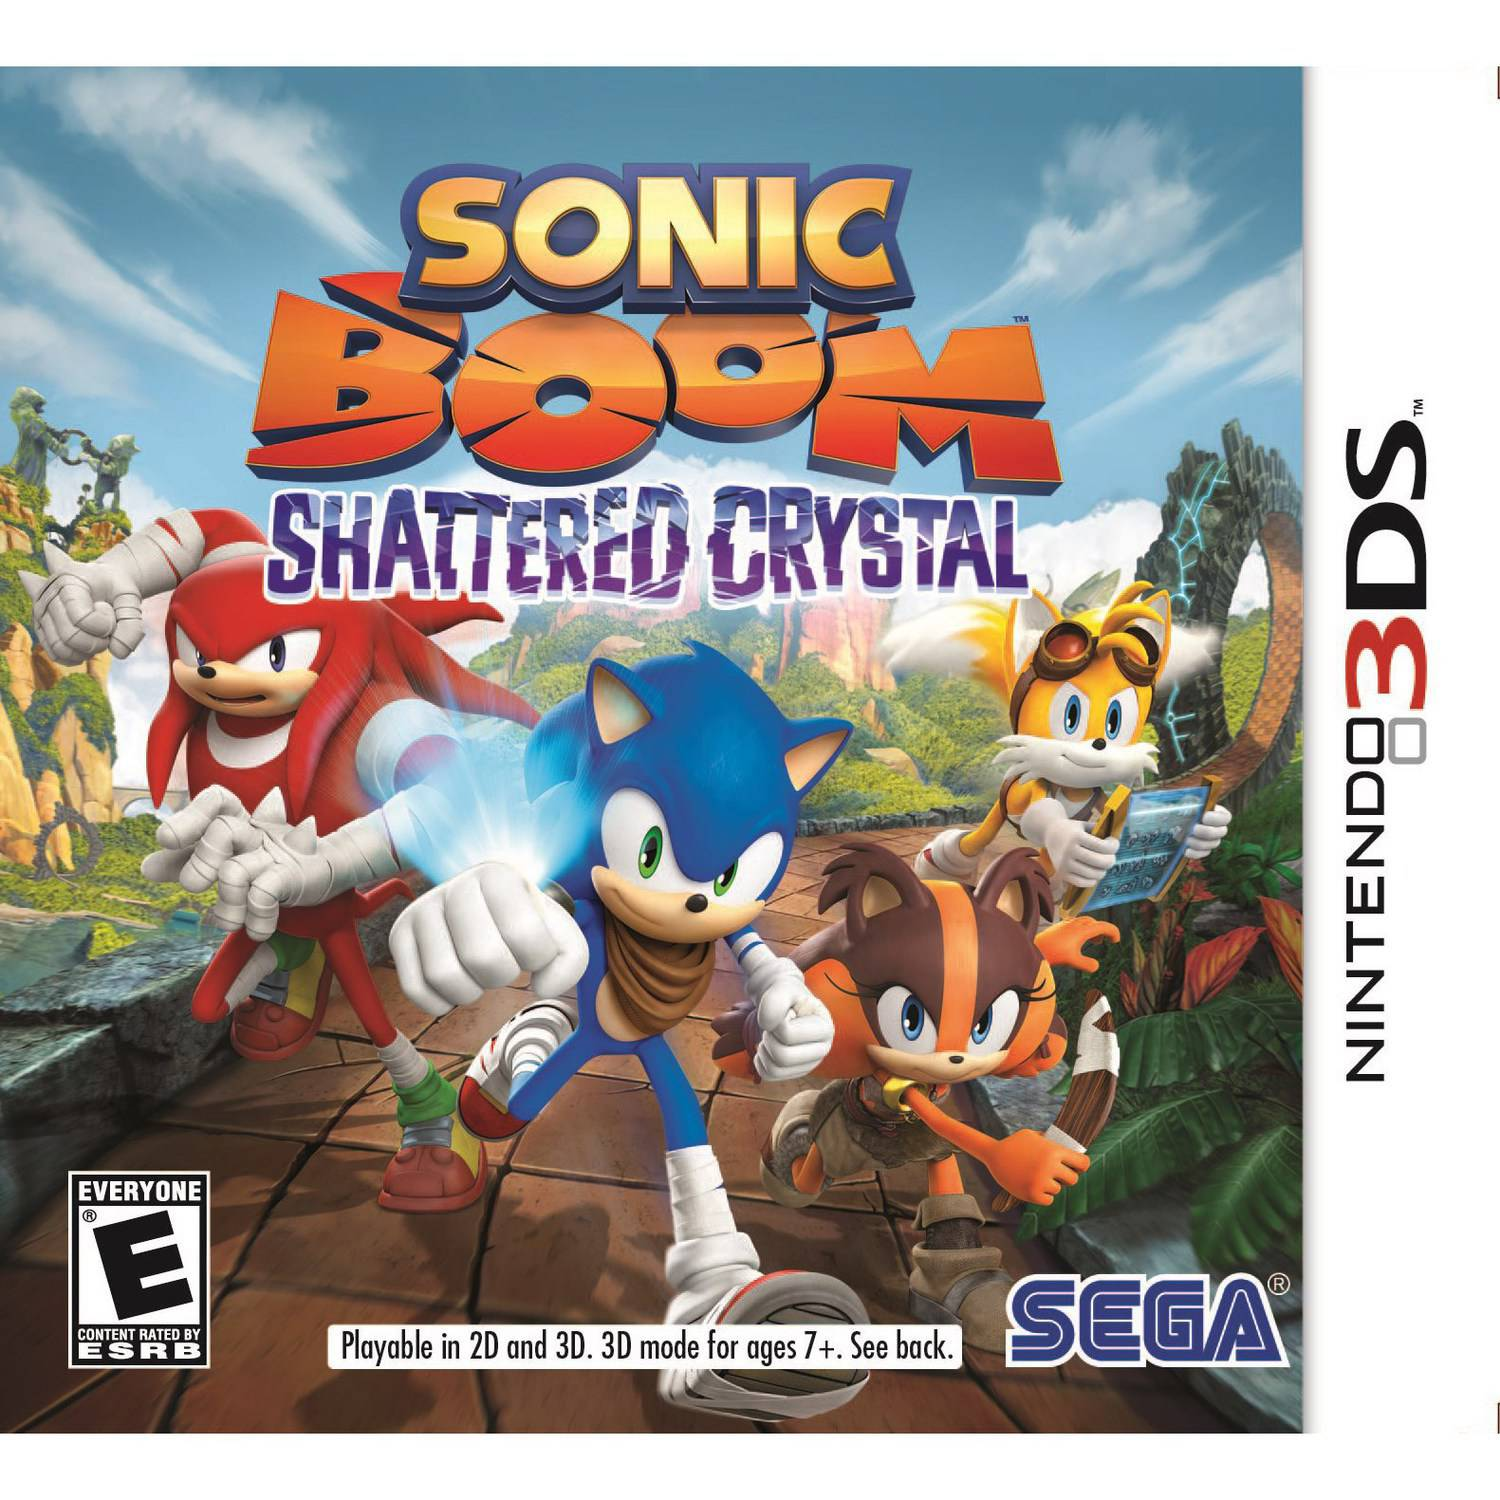 SonicBoom ShatteredCrystal (Nintendo 3DS)